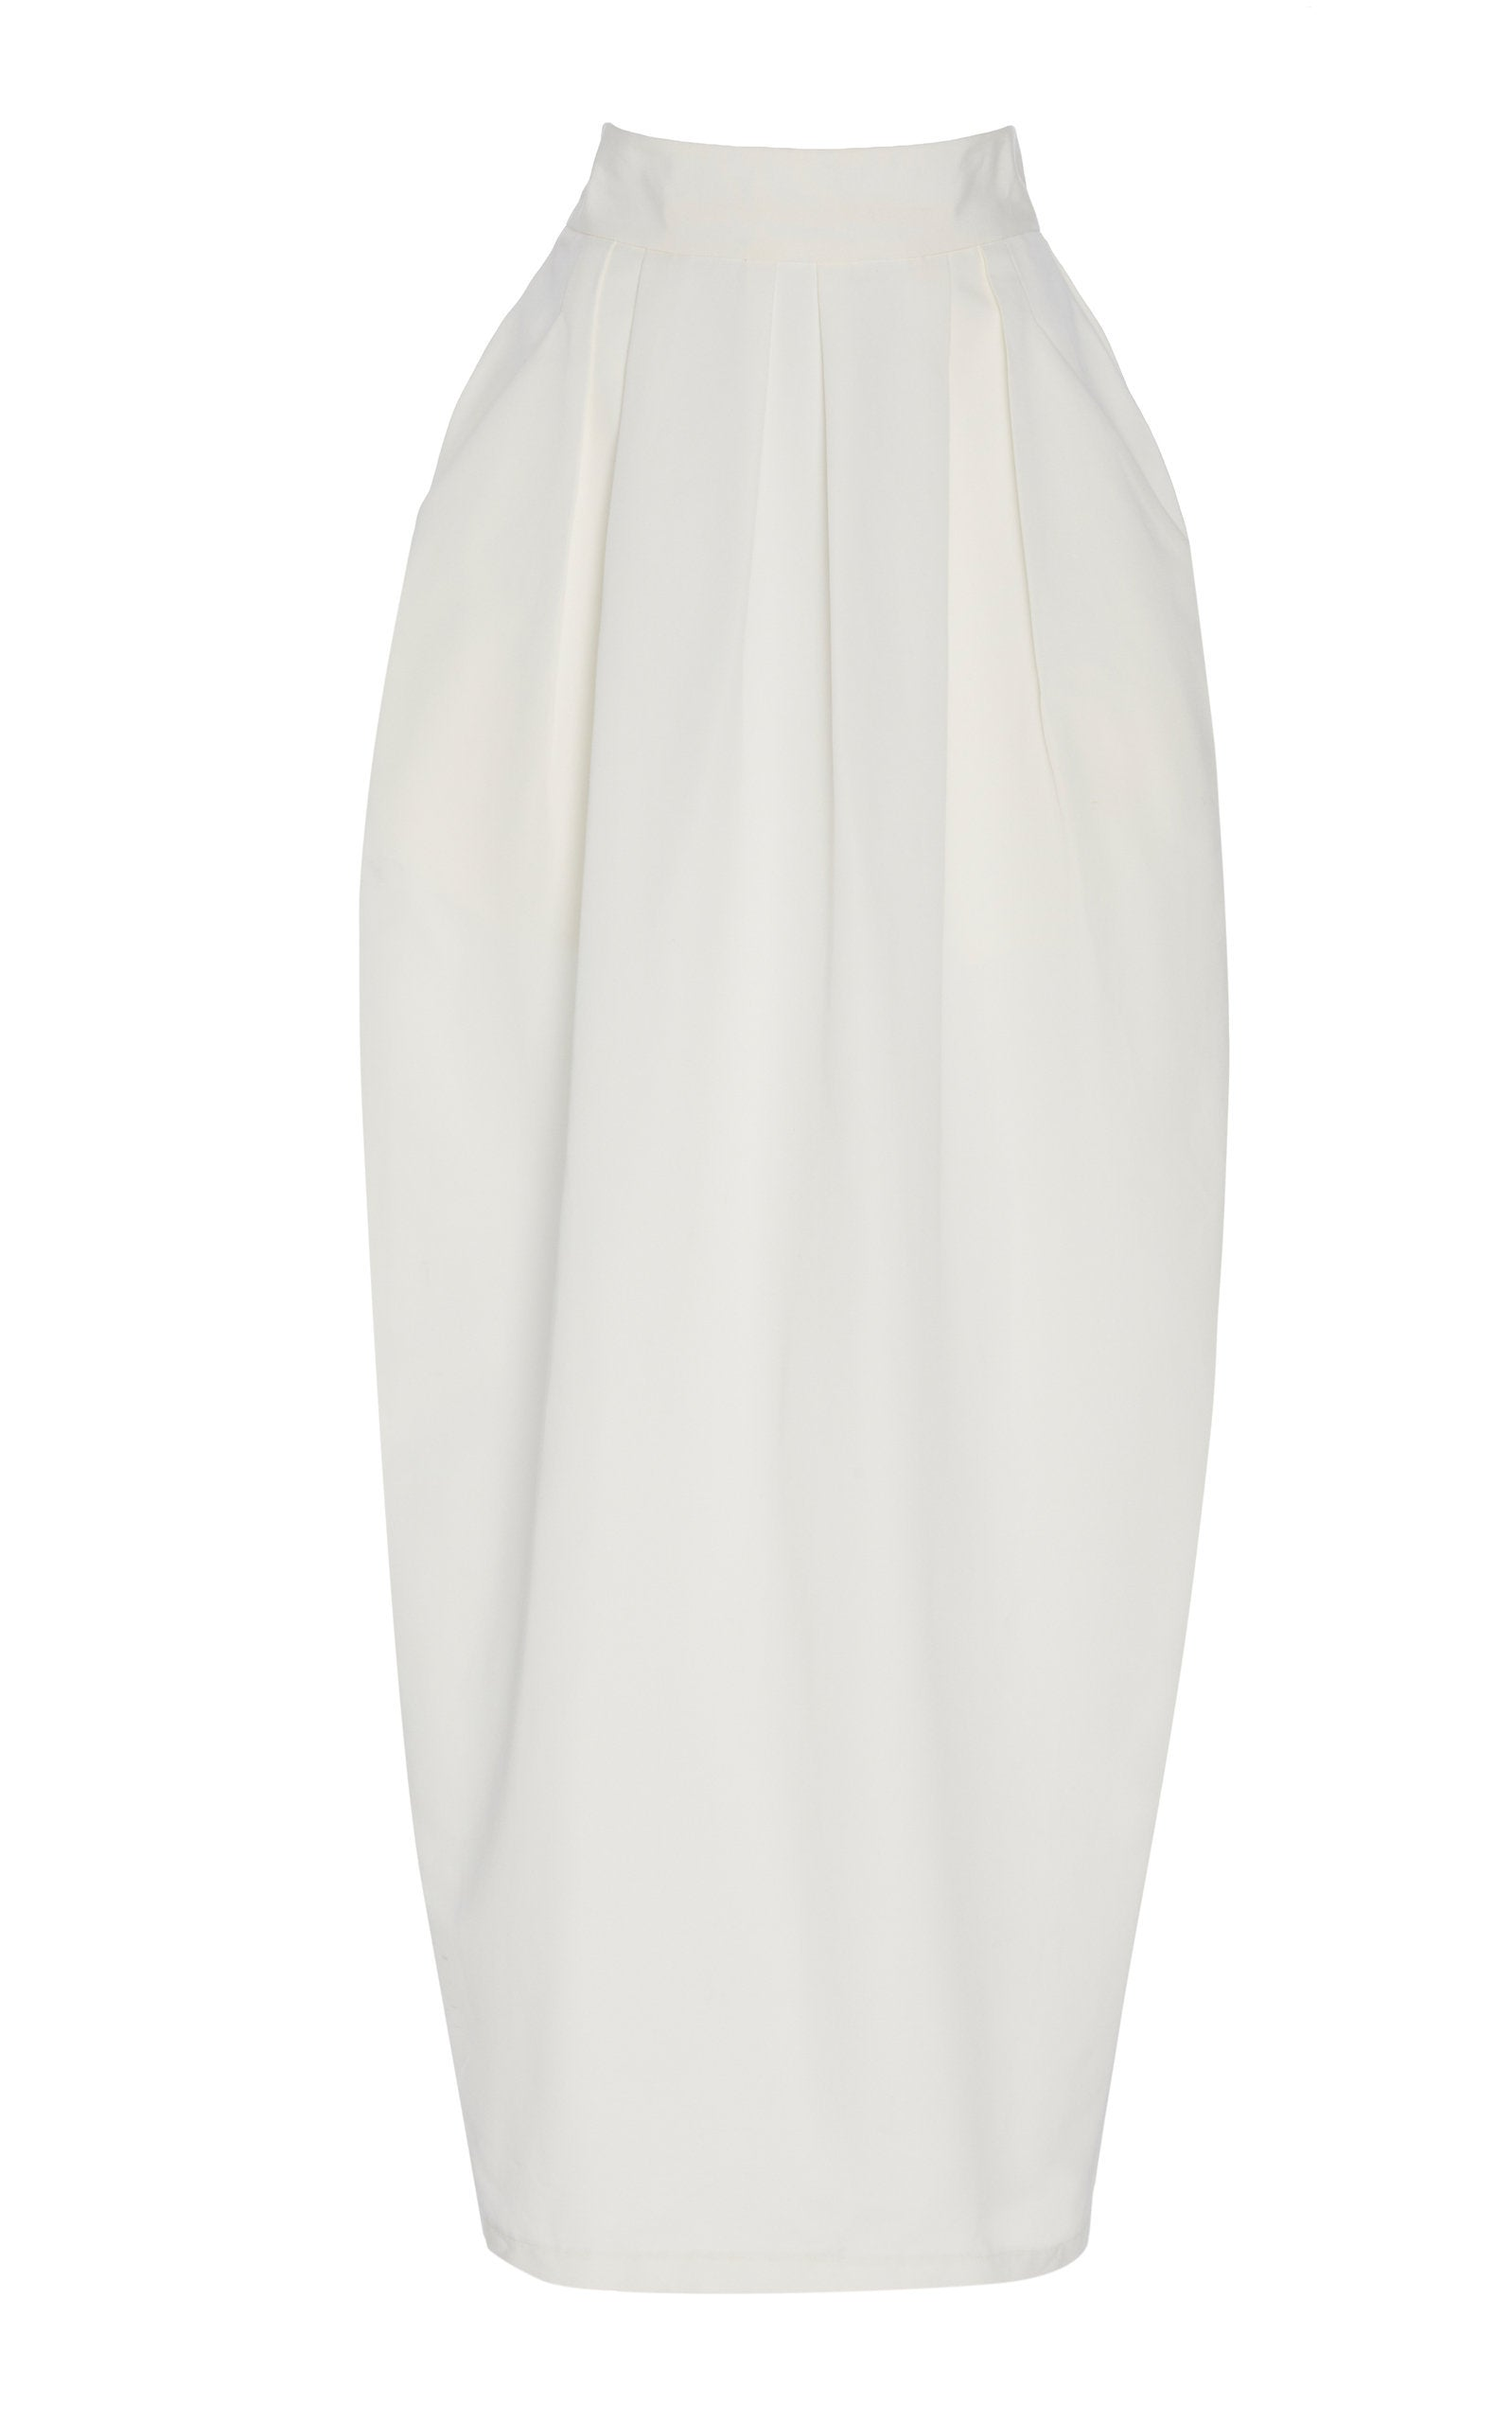 02 Tulip Skirt | White